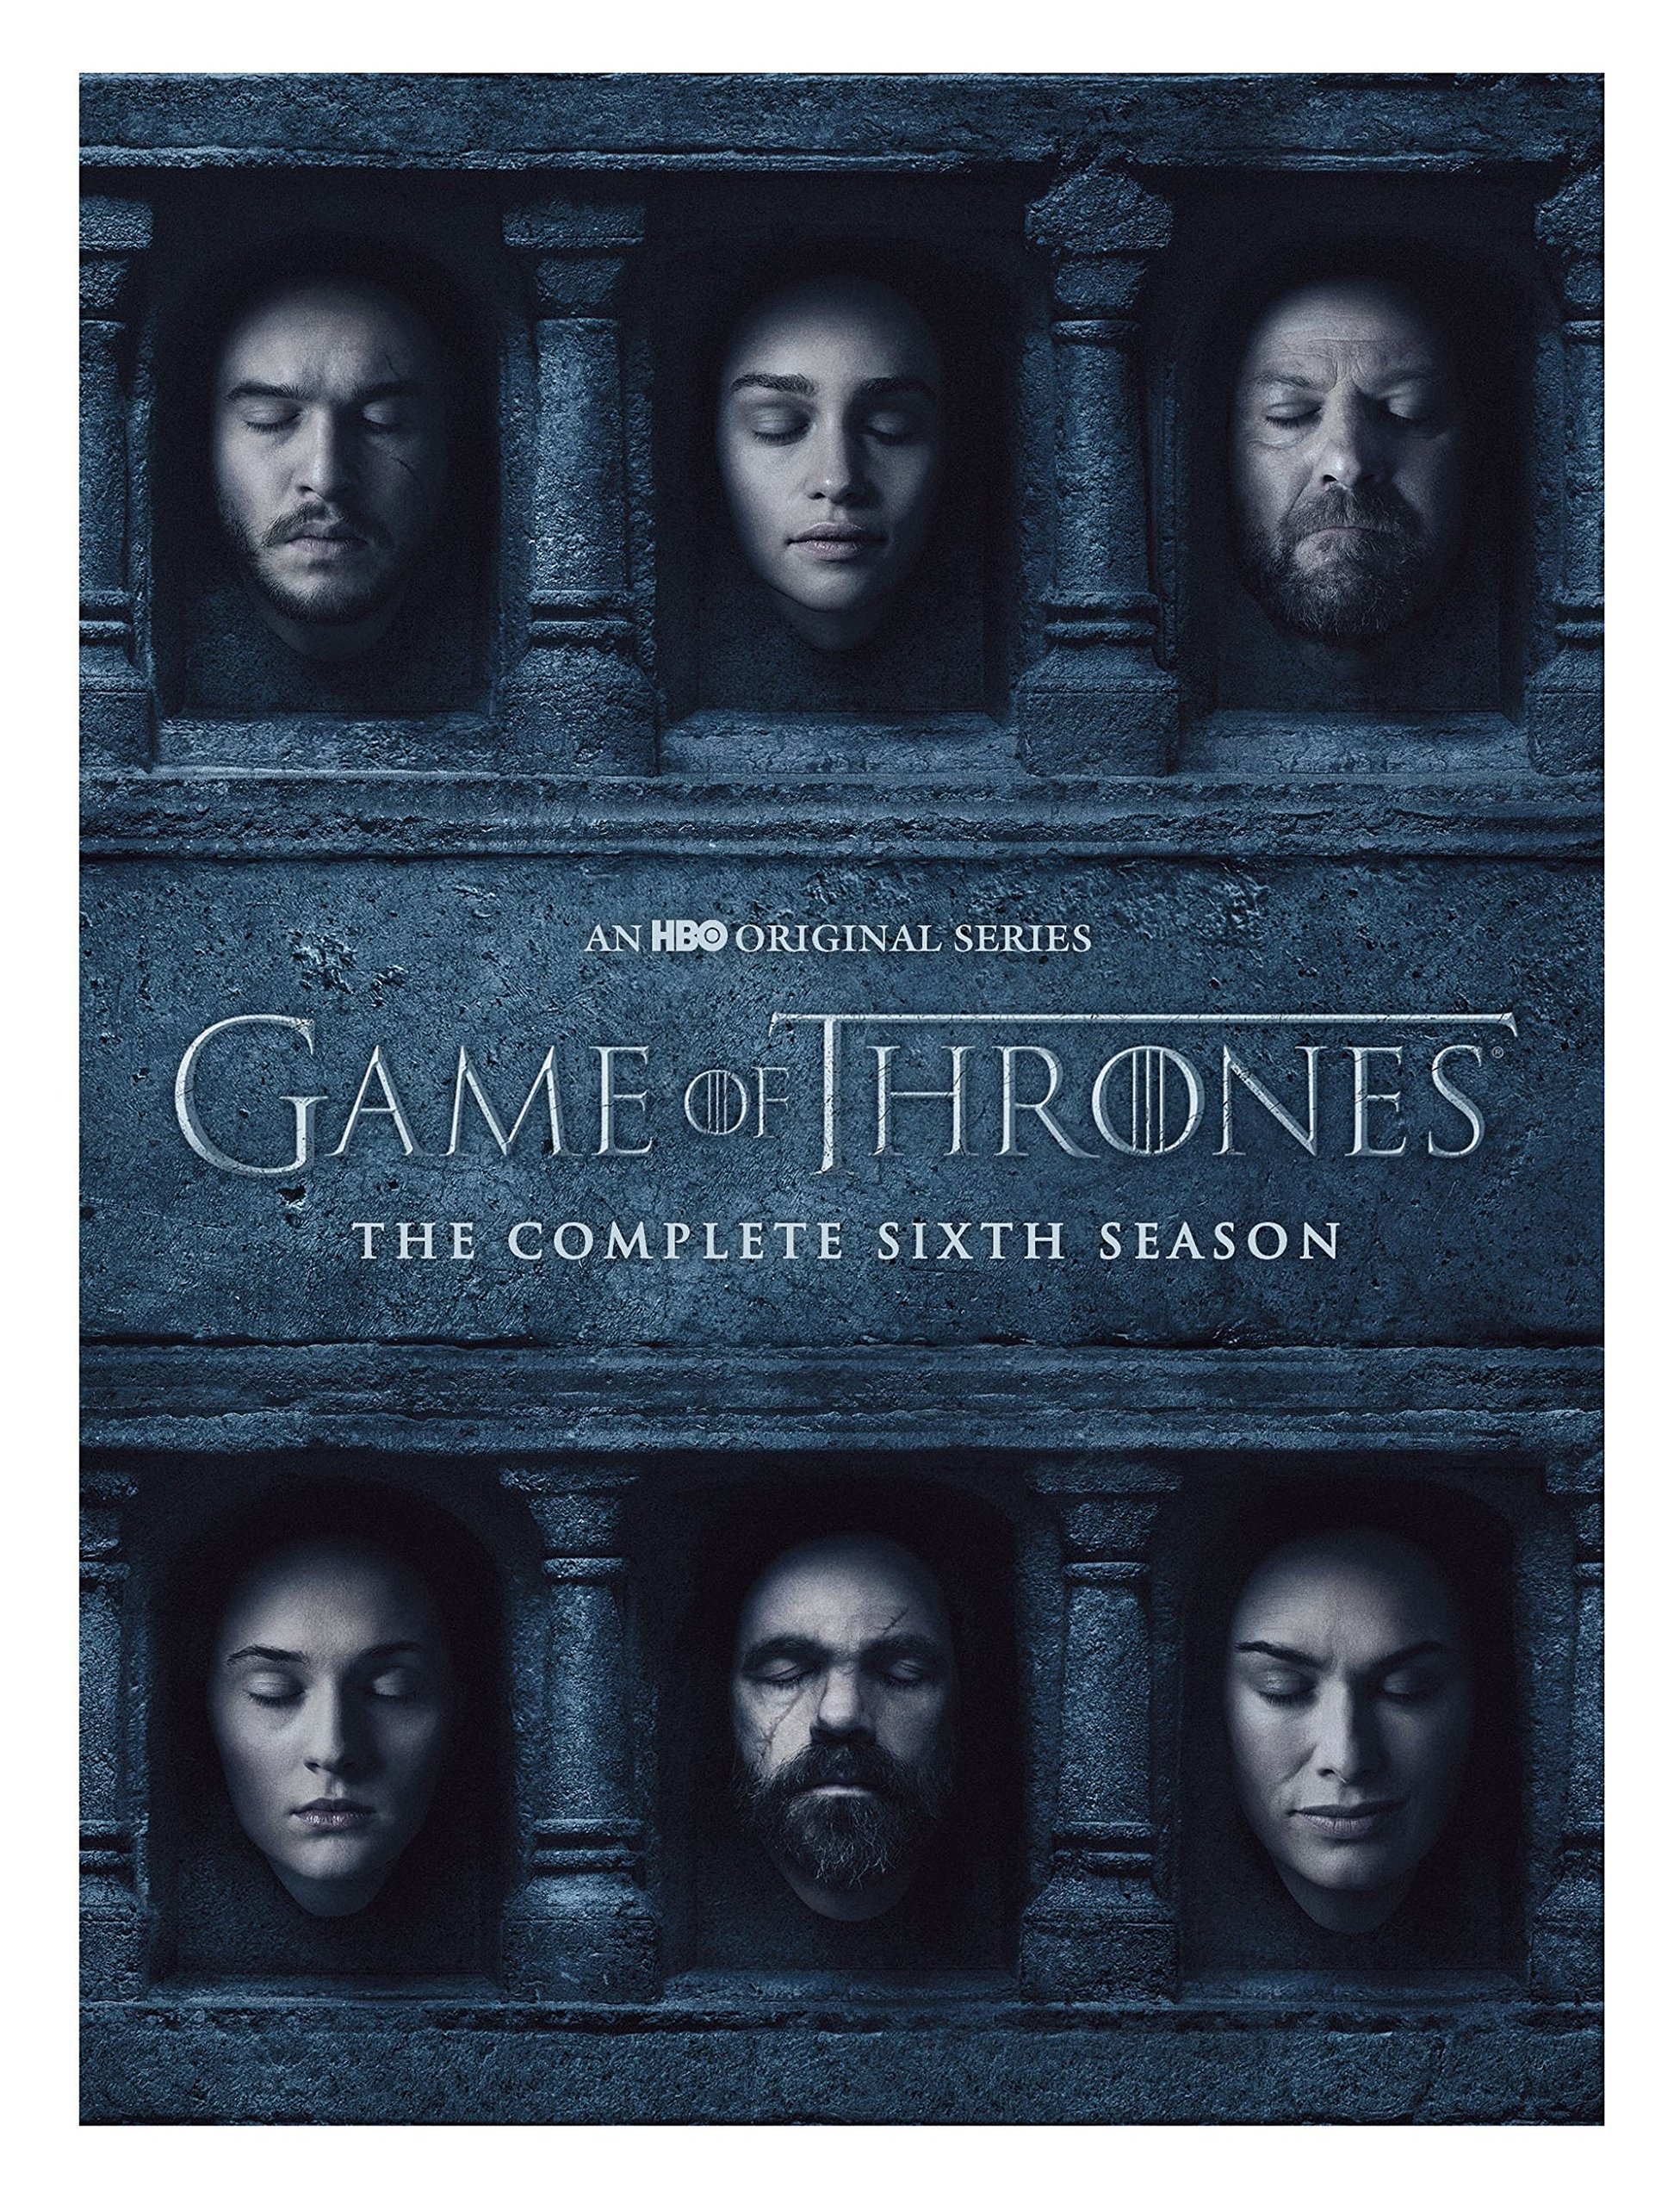 Buy Game Of Thrones Season 6 Now!